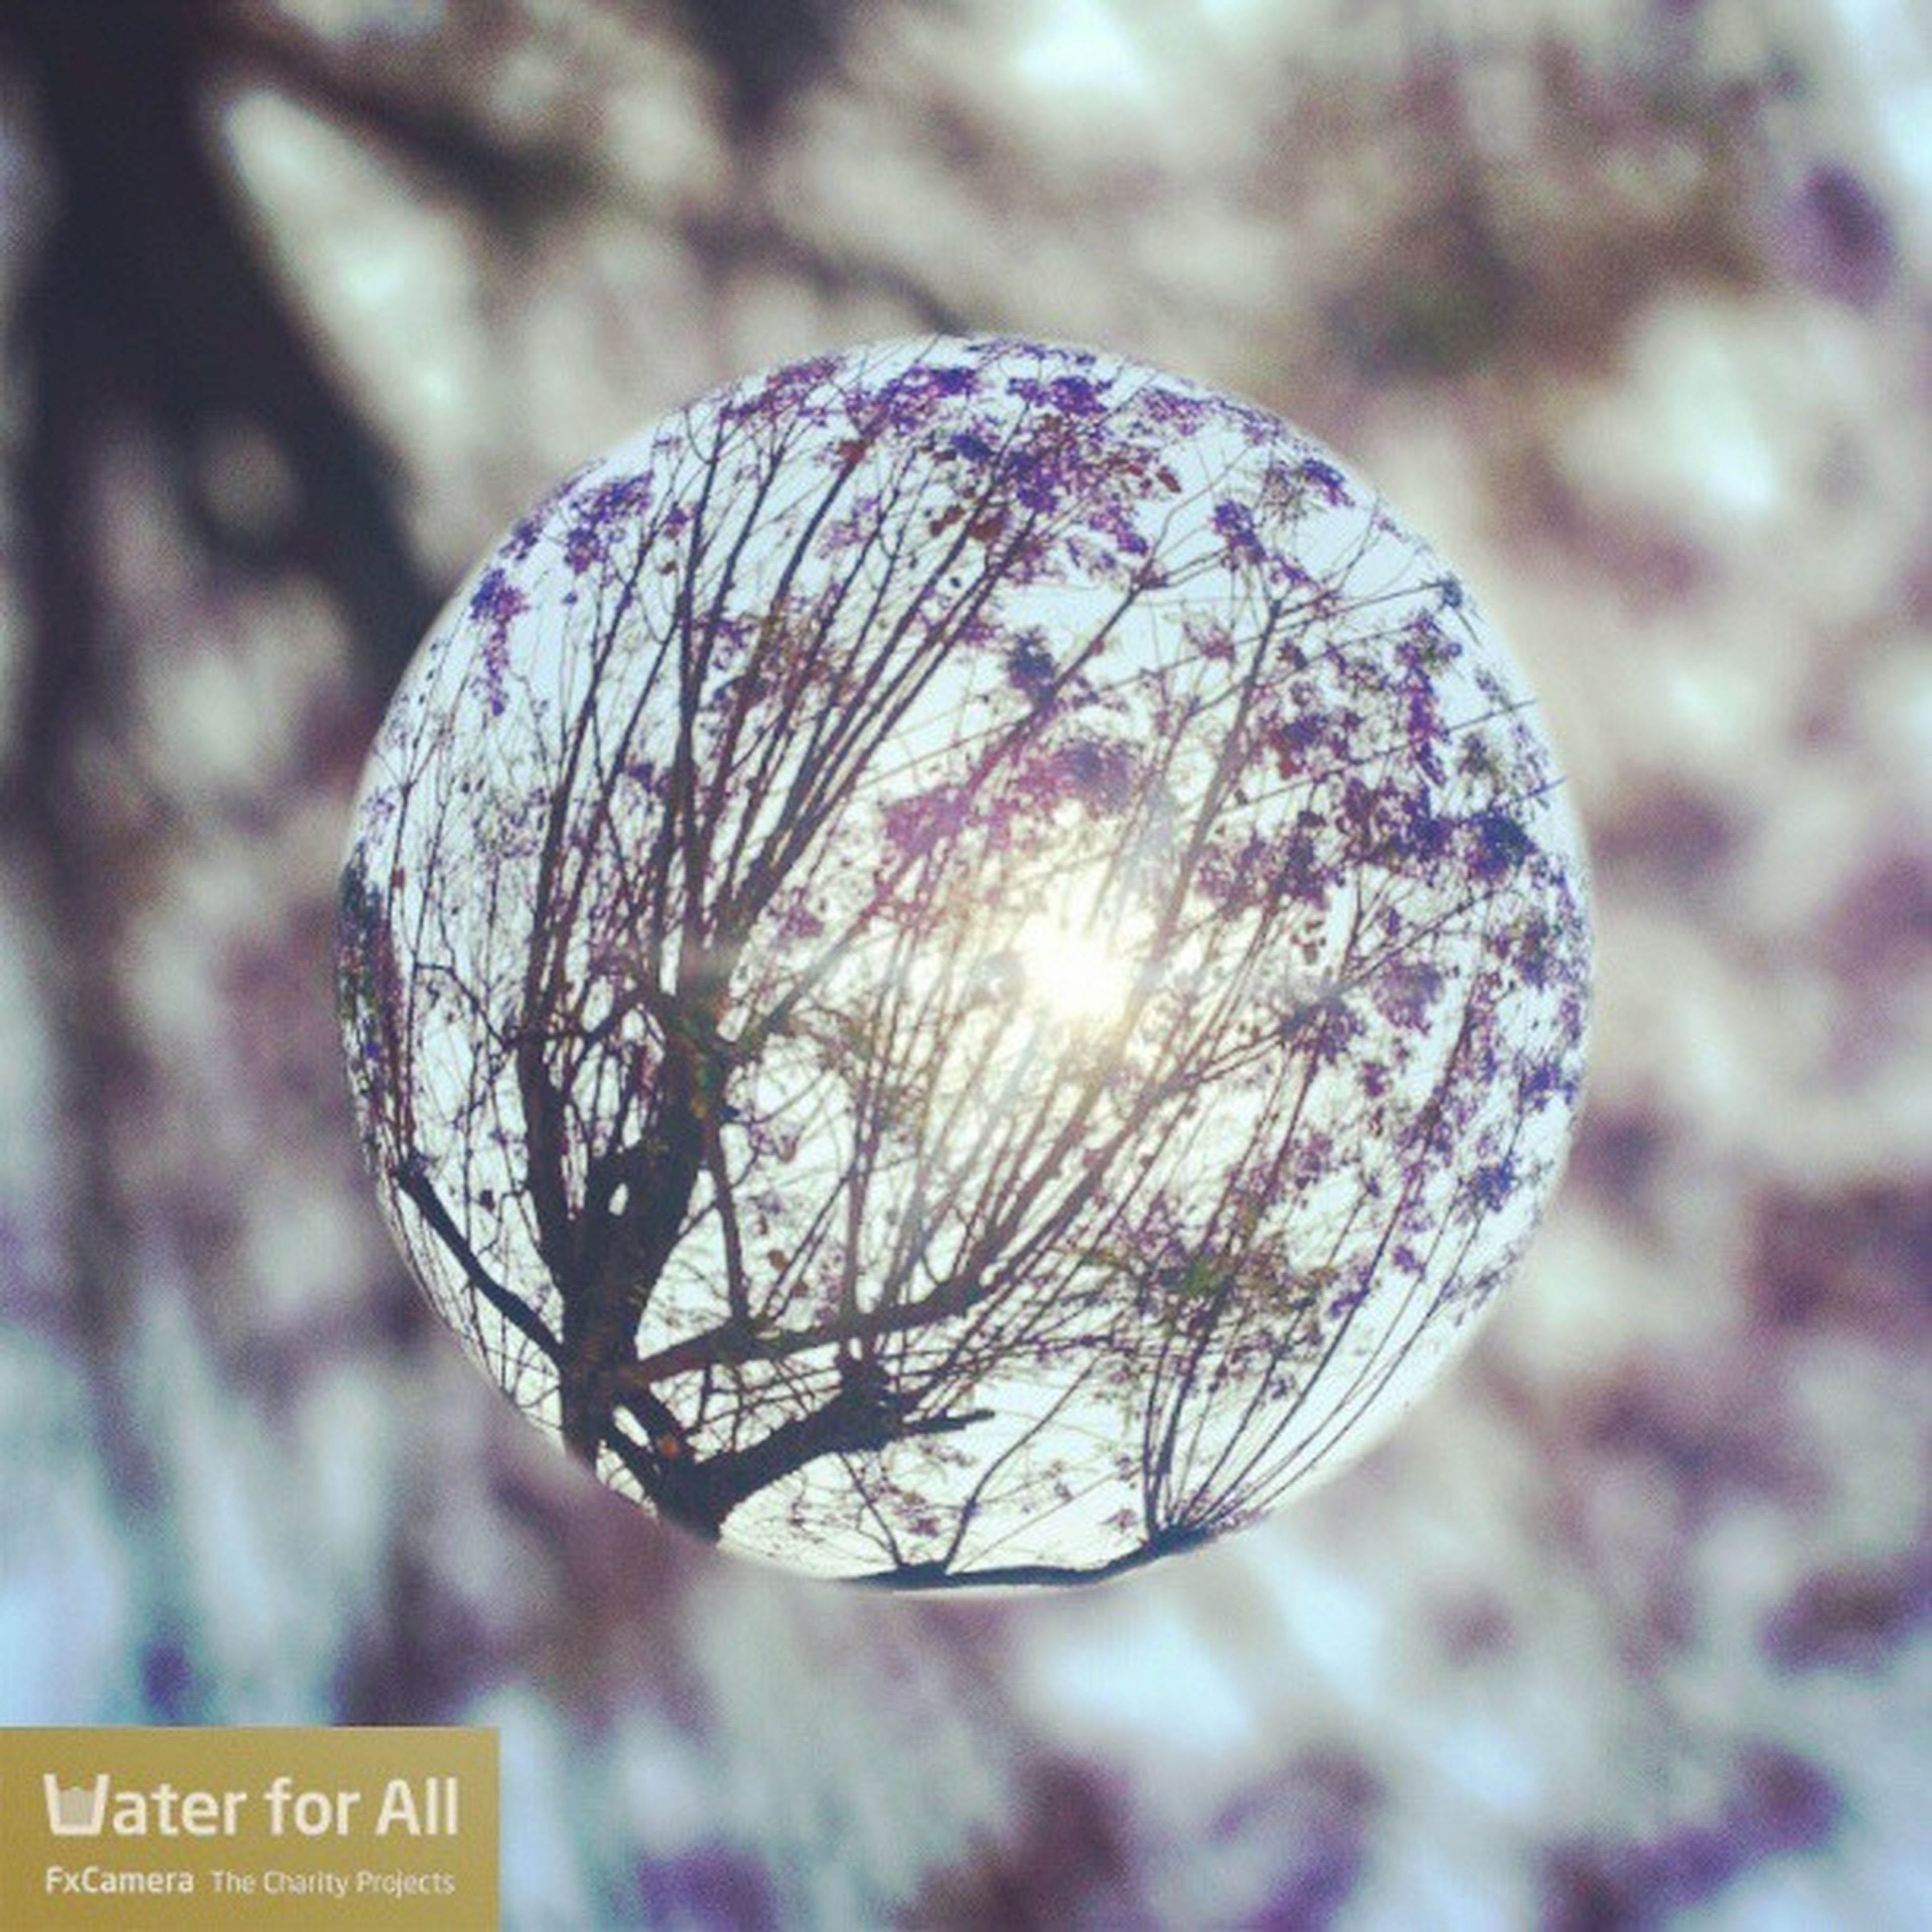 close-up, focus on foreground, circle, tree, sphere, hanging, outdoors, no people, bare tree, nature, branch, day, decoration, winter, celebration, low angle view, communication, pattern, selective focus, tranquility